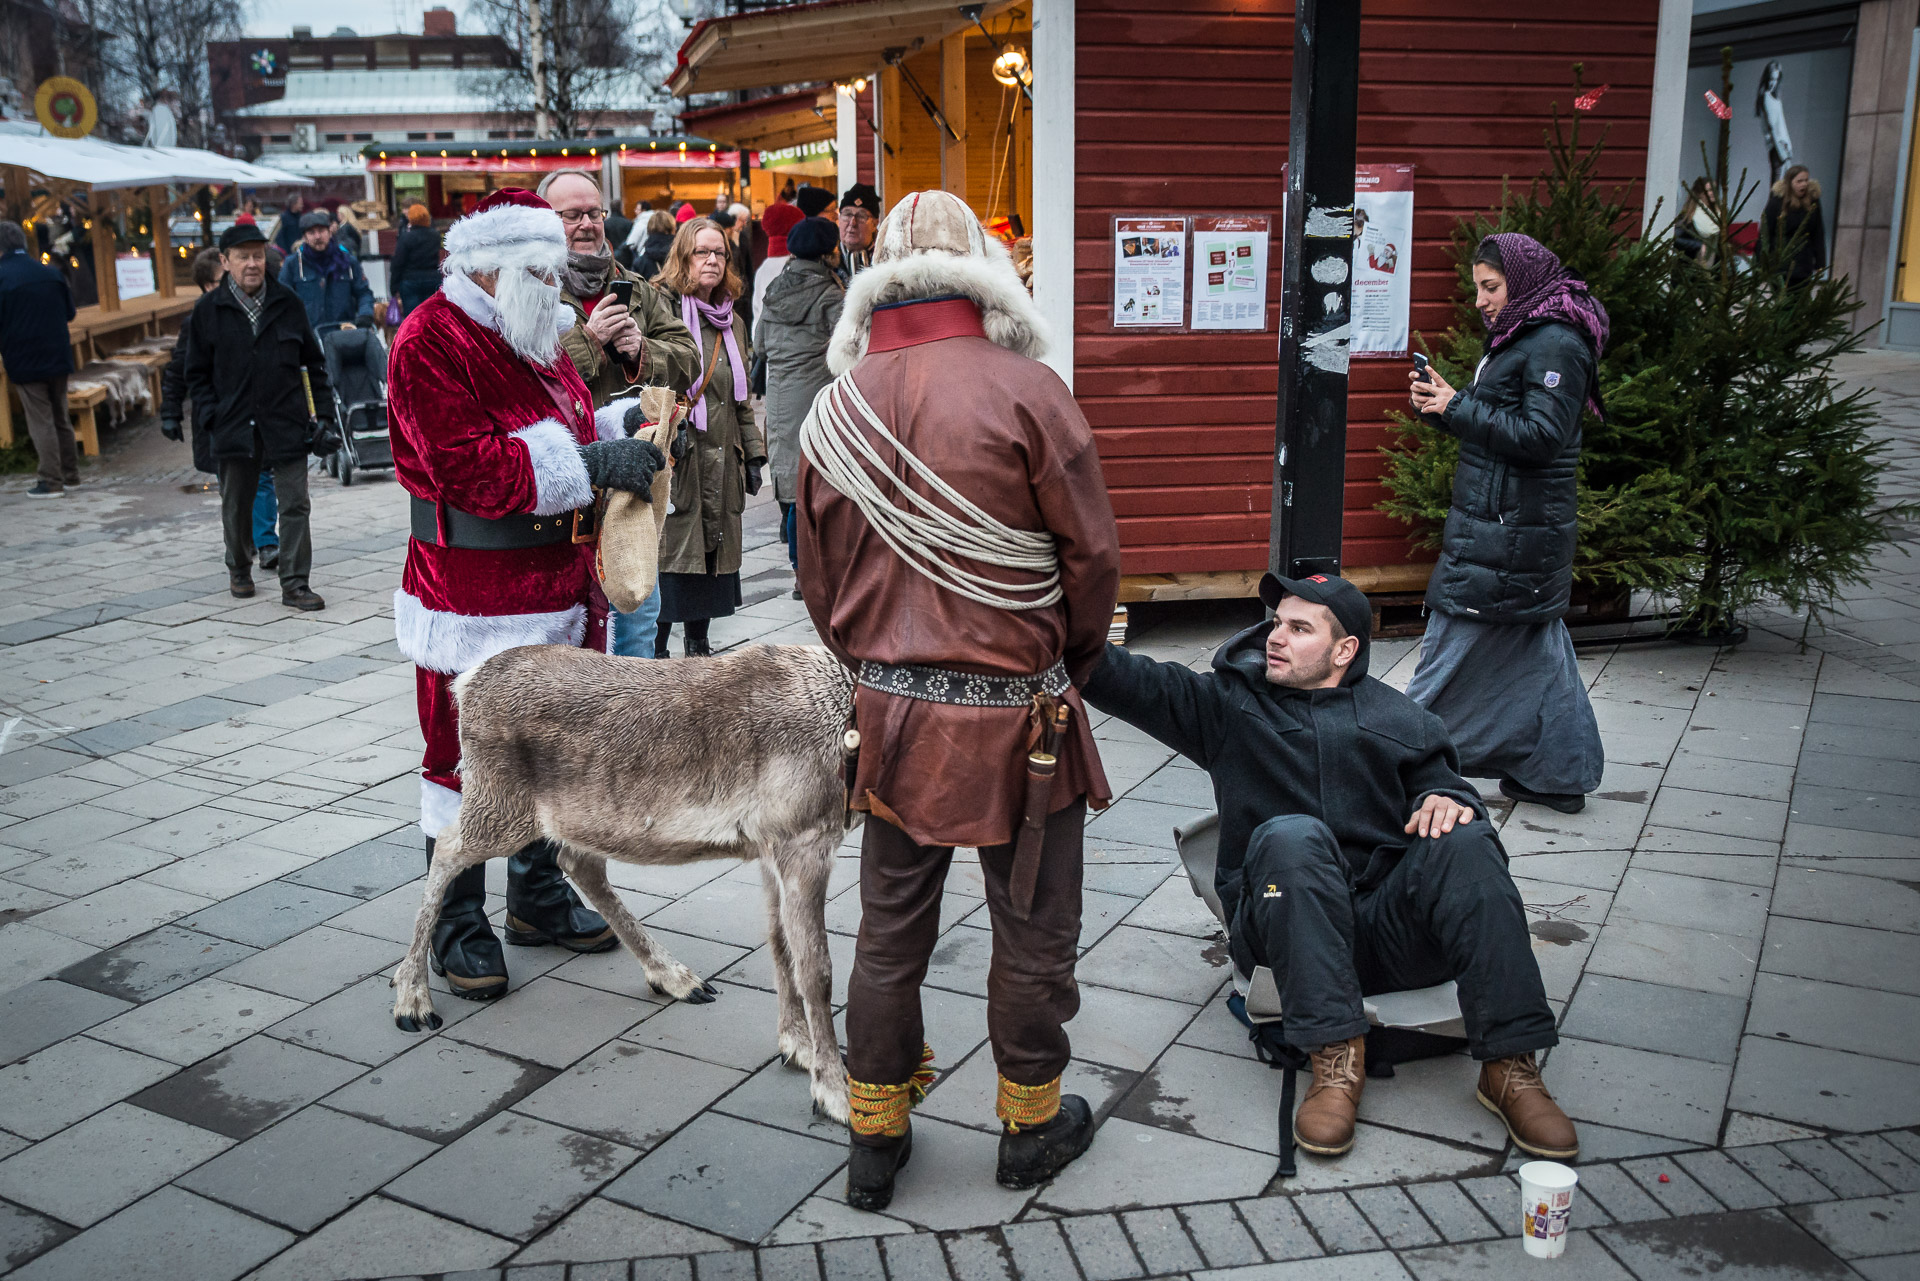 Santa's Reindeer Meets the Beggar by niklin1